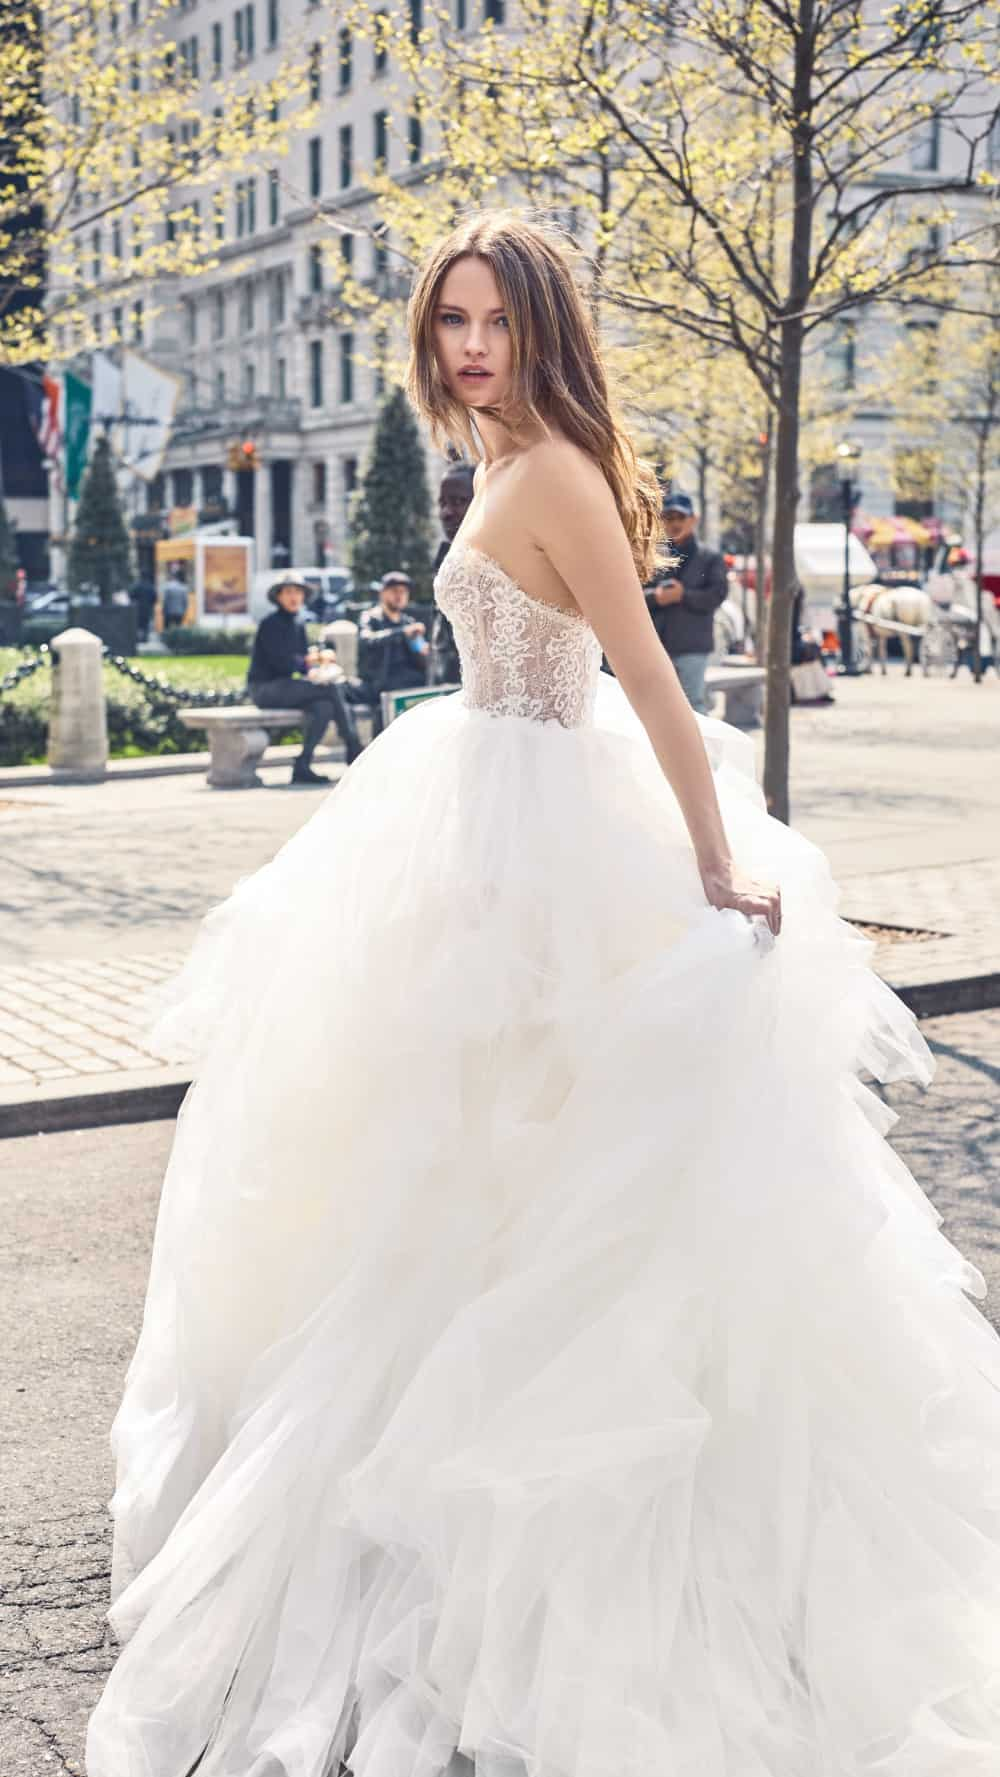 Bliss Monique Lhuillier Strapless Ball Gown Wedding Dress